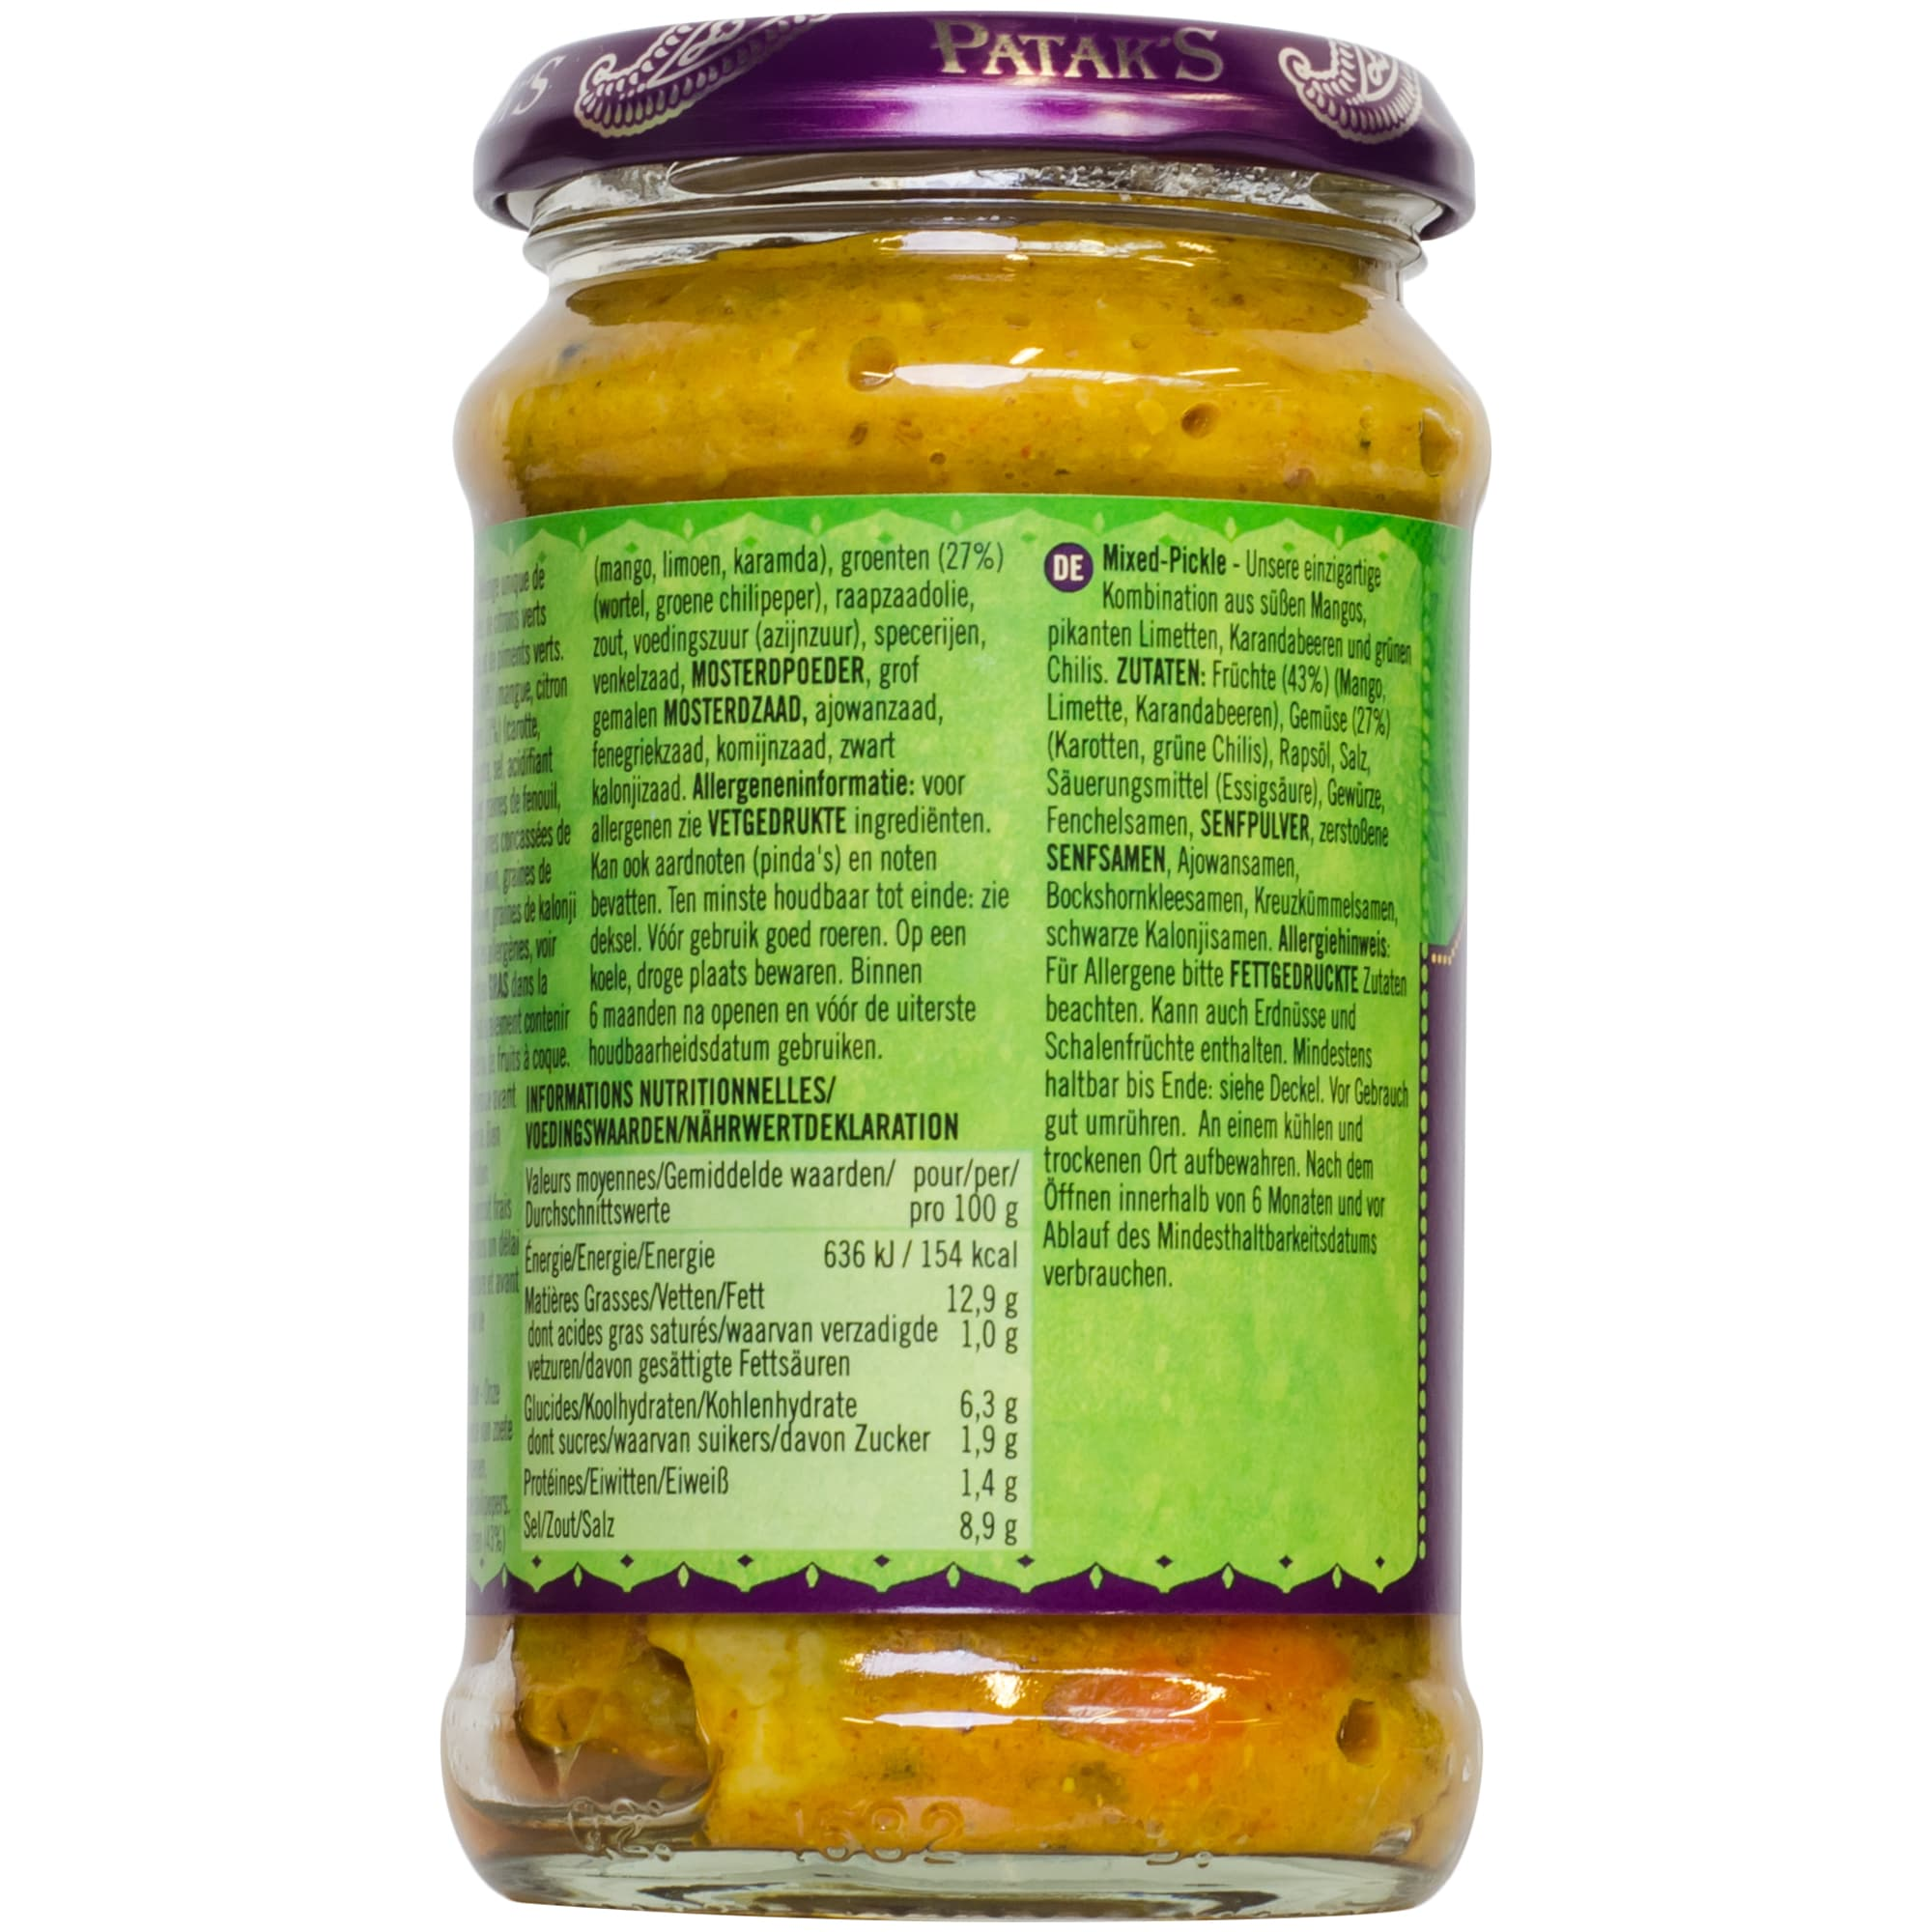 Patak's Mixed Pickle scharf 283g